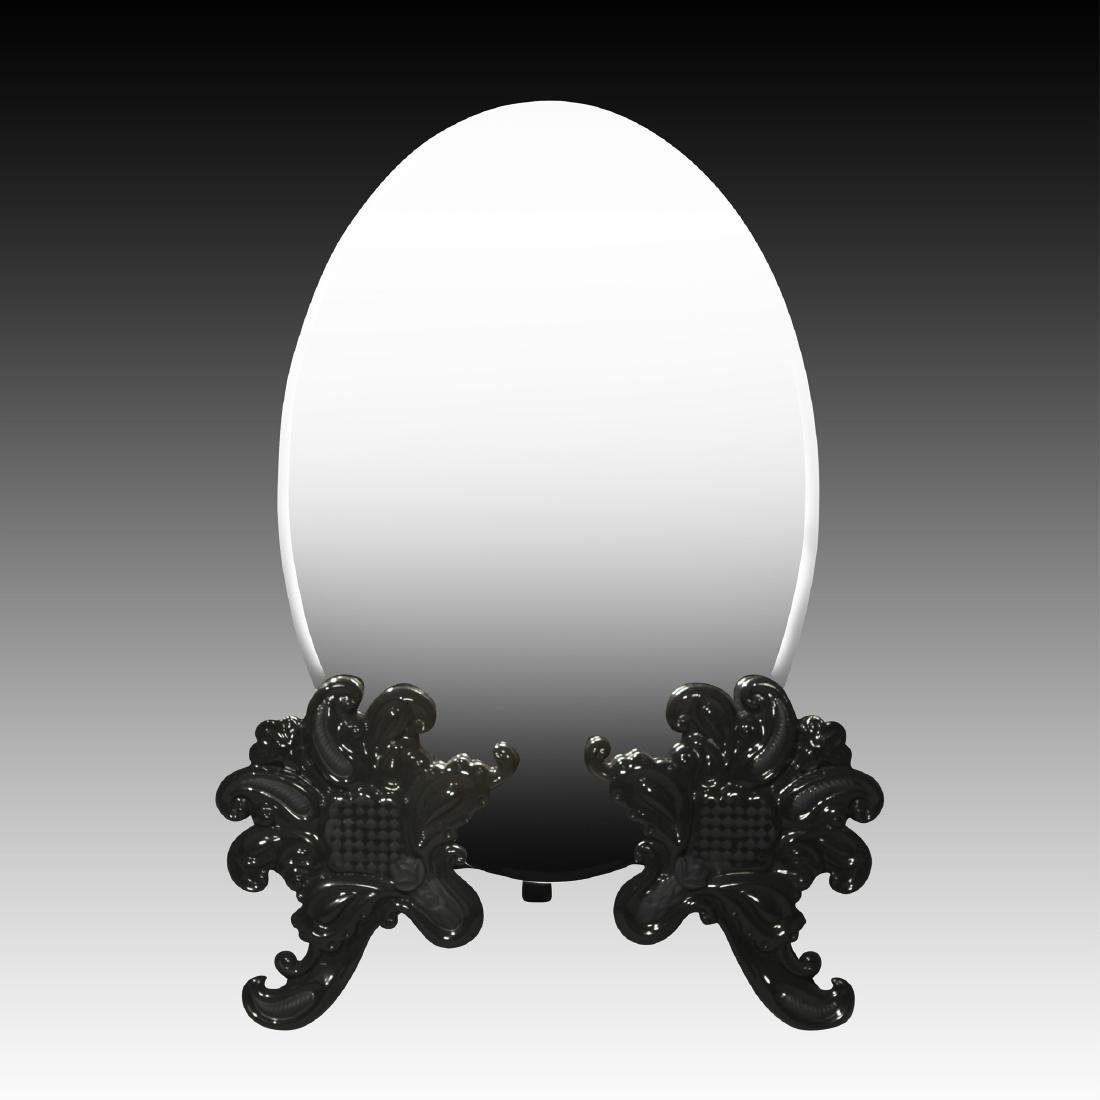 LLADRO BLACK ORNATE VANITY MIRROR TABLETOP